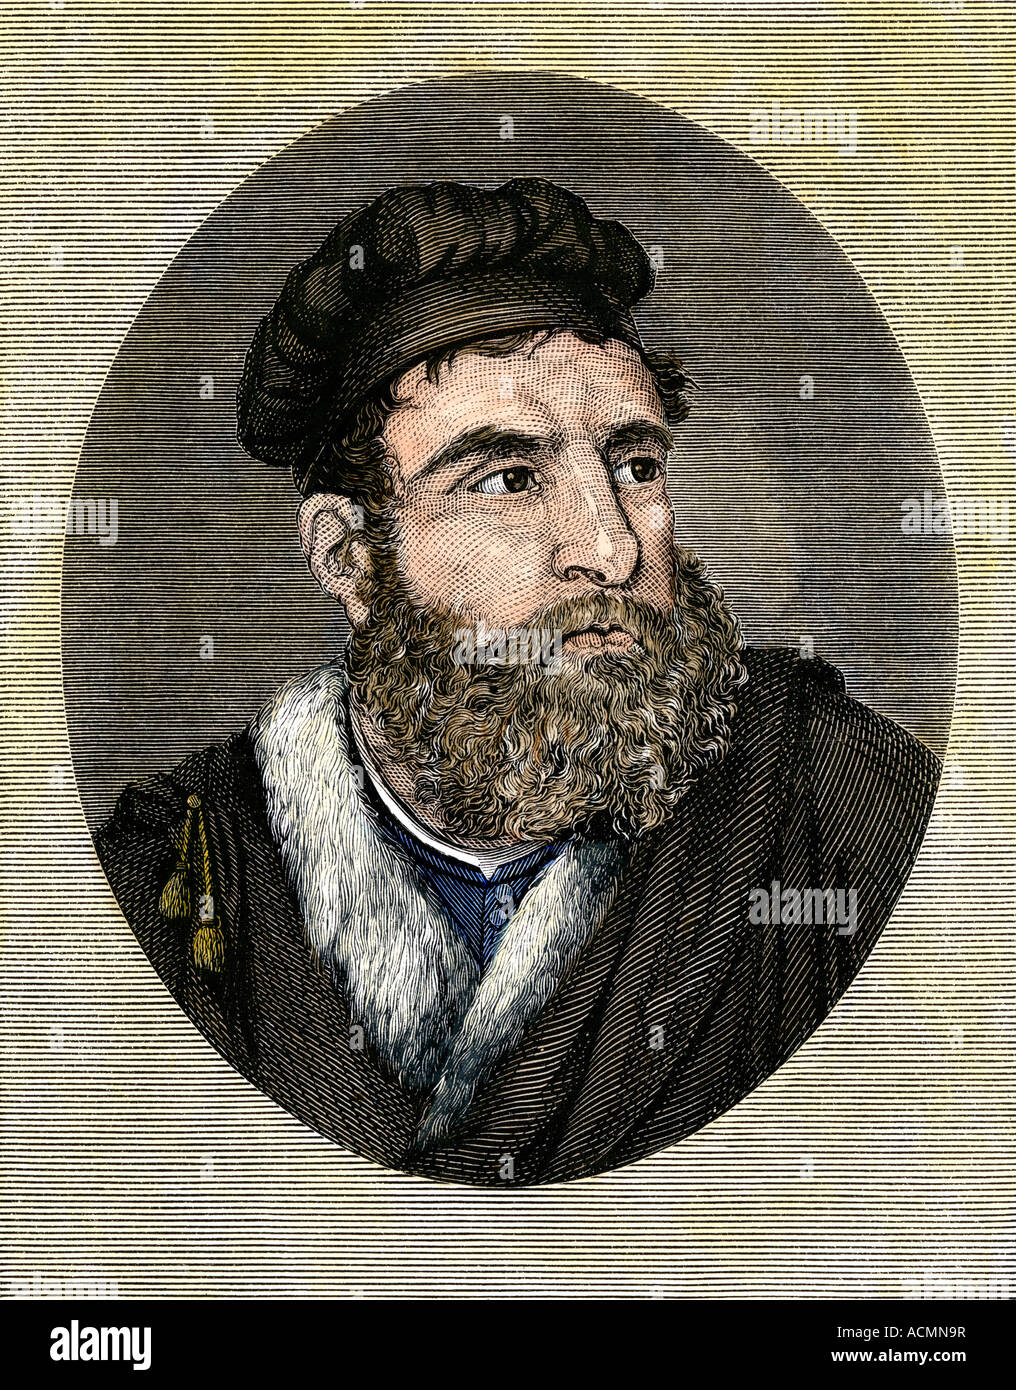 the lives of marco polo and galileo The polo brothers took 21-year old marco when they began their return trip in 1271, with the blessings of the doge, who secretly hoped for venice's power to expand, and the new pope, who assigned two priests to travel with them.